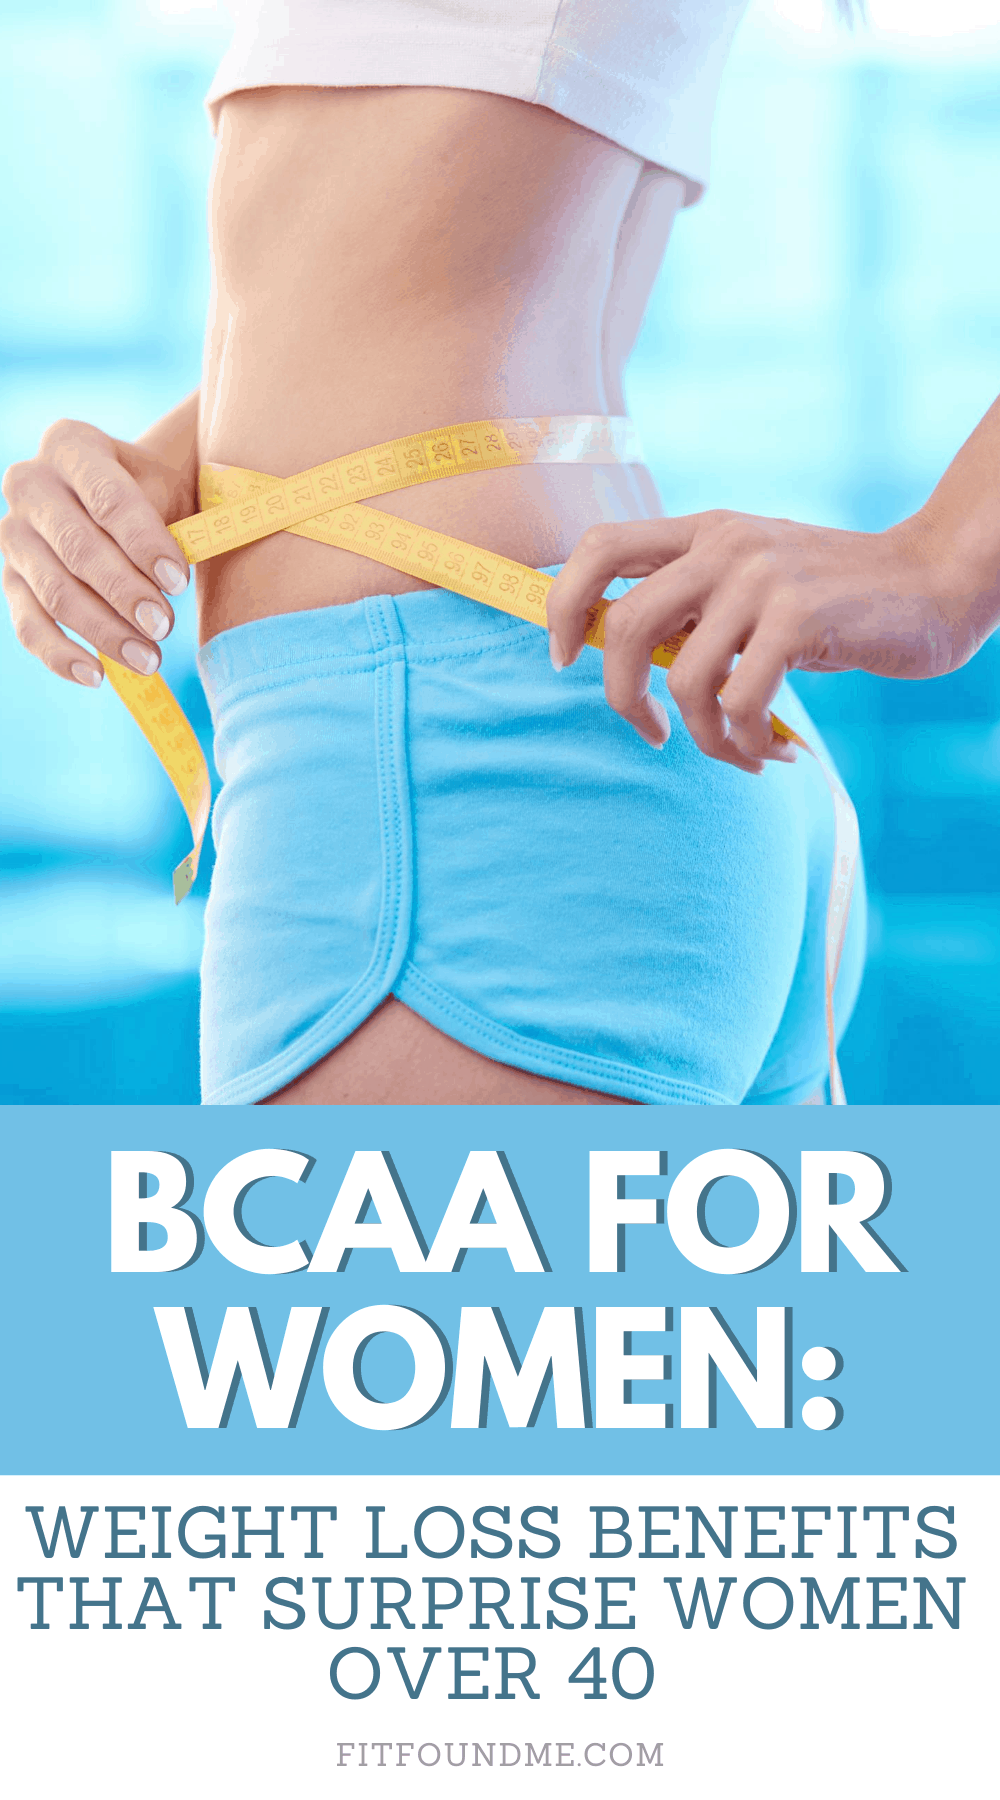 Study after study supports the weight loss benefits of BCAAs for women, and anyone trying to lose weight and live healthily. If you're one of the many women over 40 struggling, don't give up yet, BCAAs could be the magic you've been waiting for. I really like the benefits of BCAA supplements and since making it part of my daily routine I have noticed some positive changes in how I feel. via @fitfoundme